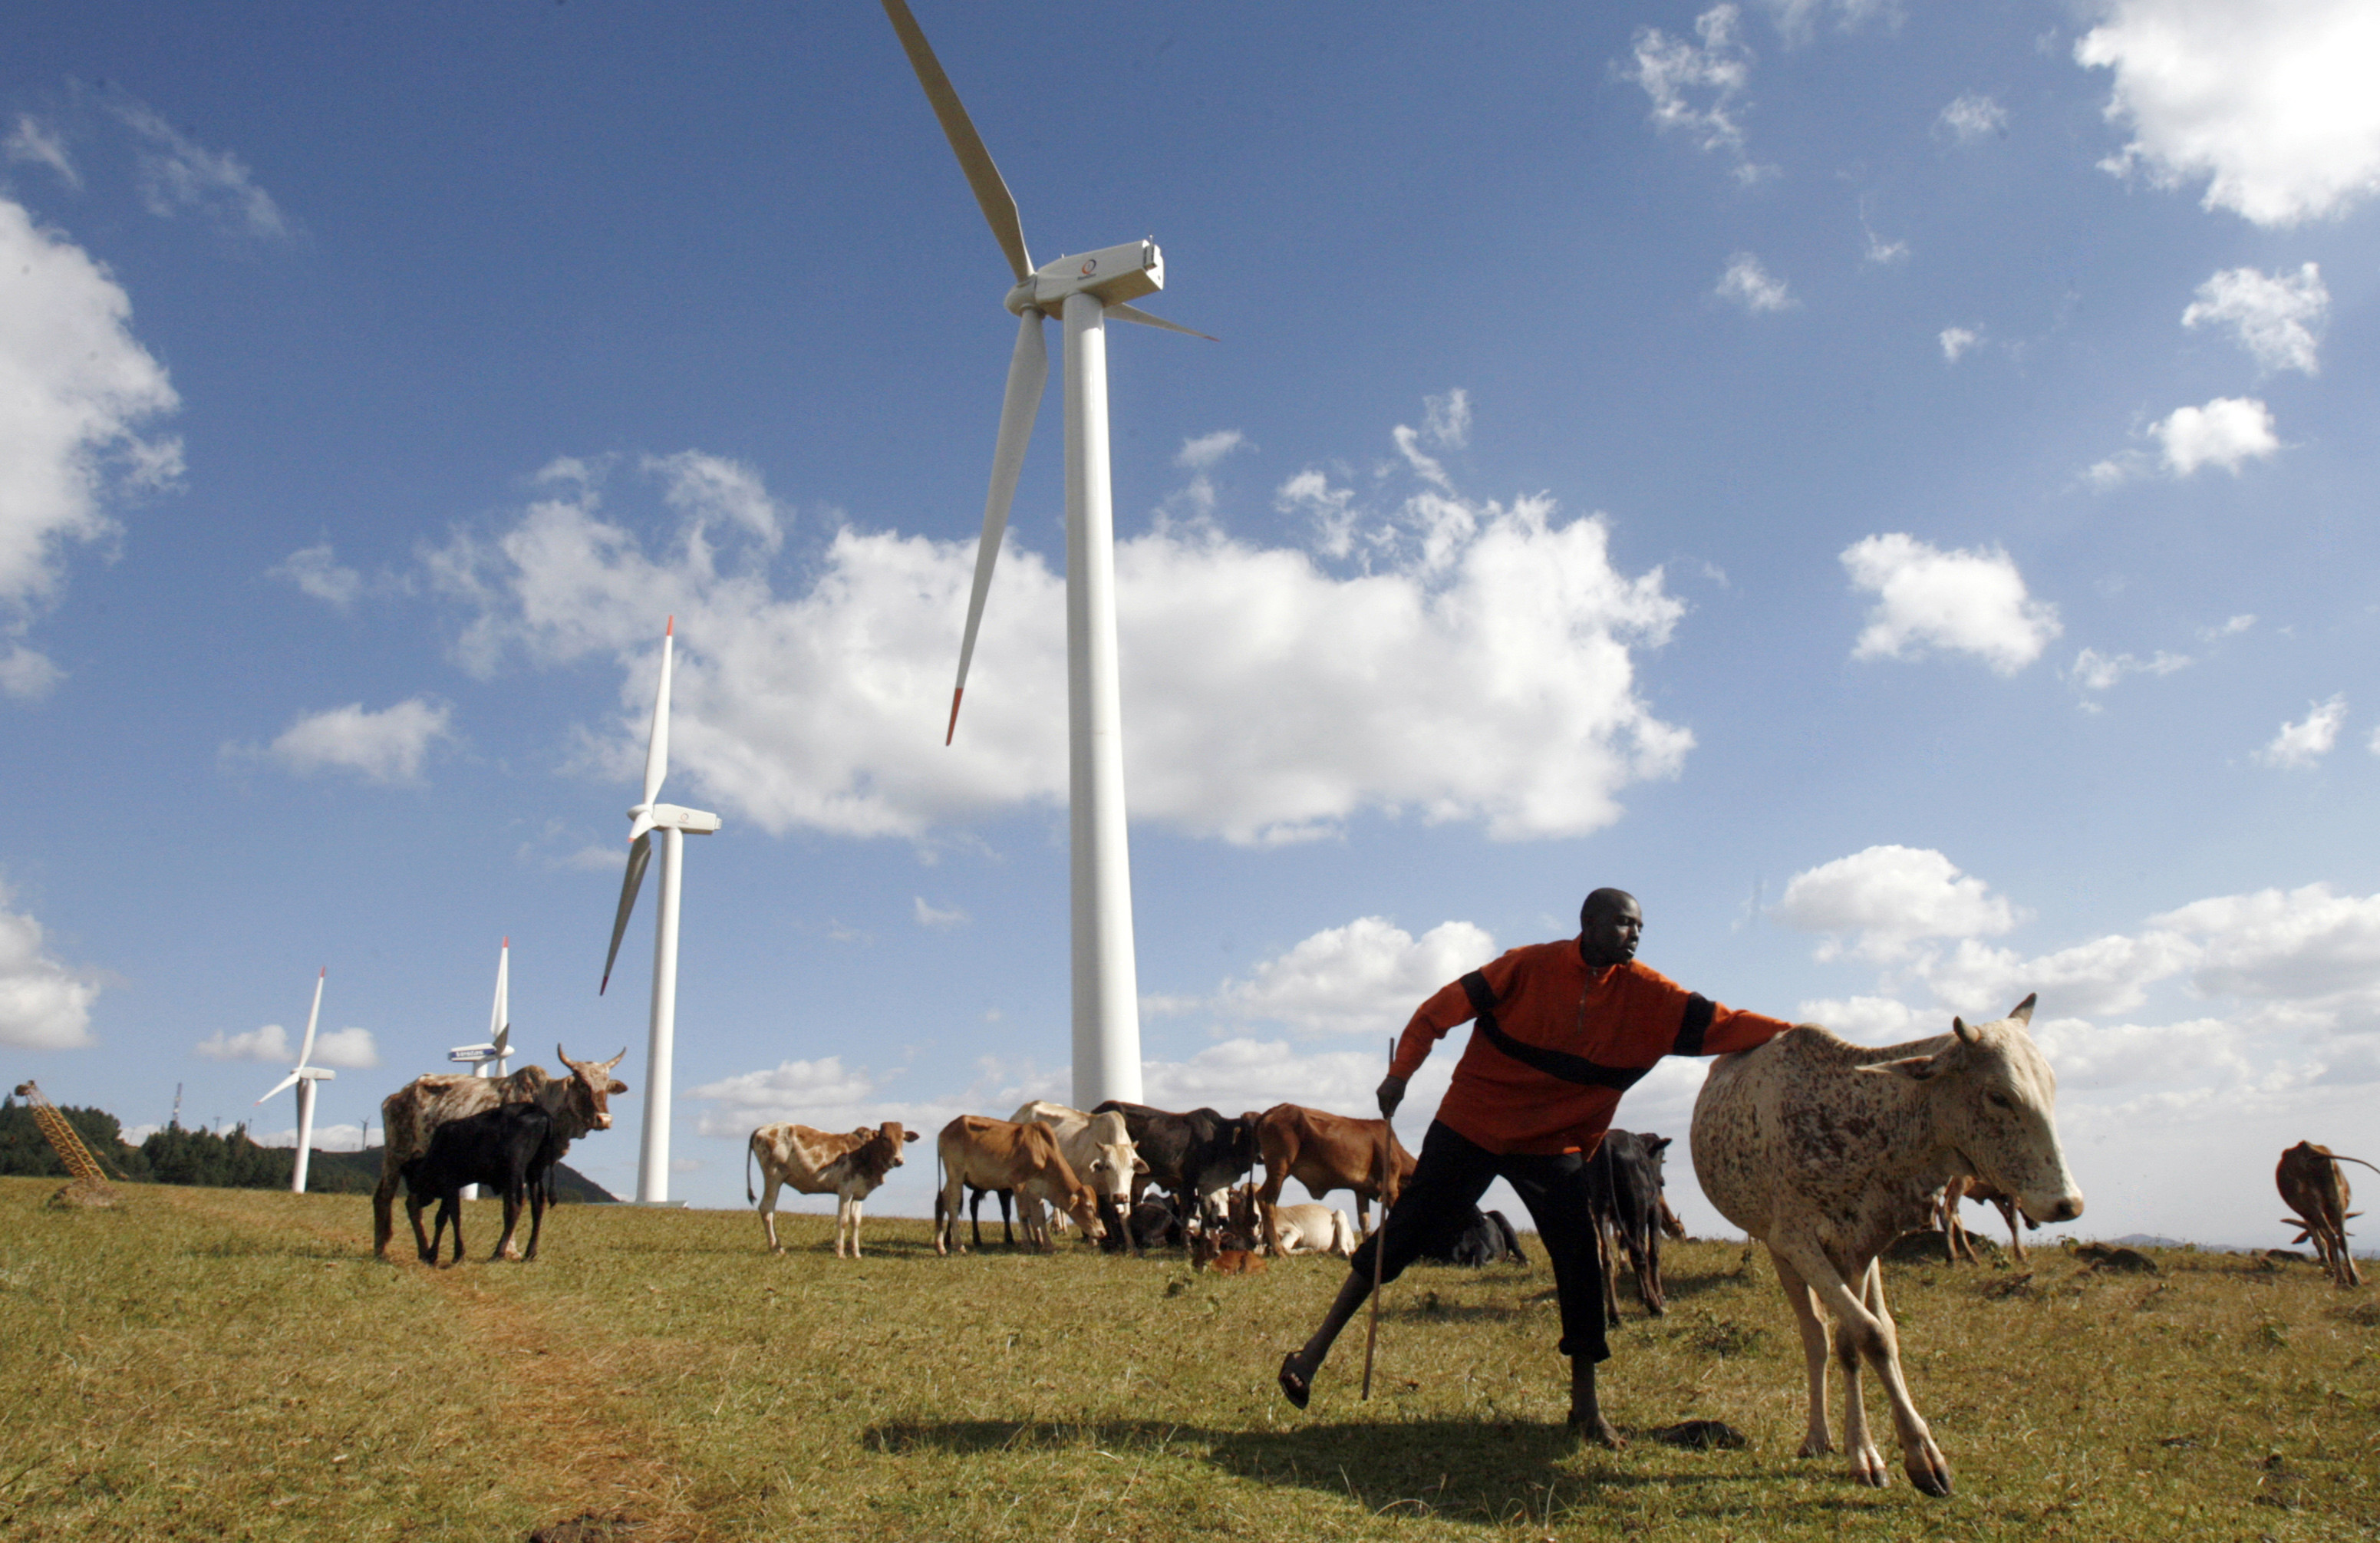 A Masaai herdsman looks after his cattle near the power-generating wind turbines at the Kenya Electricity Generating Company